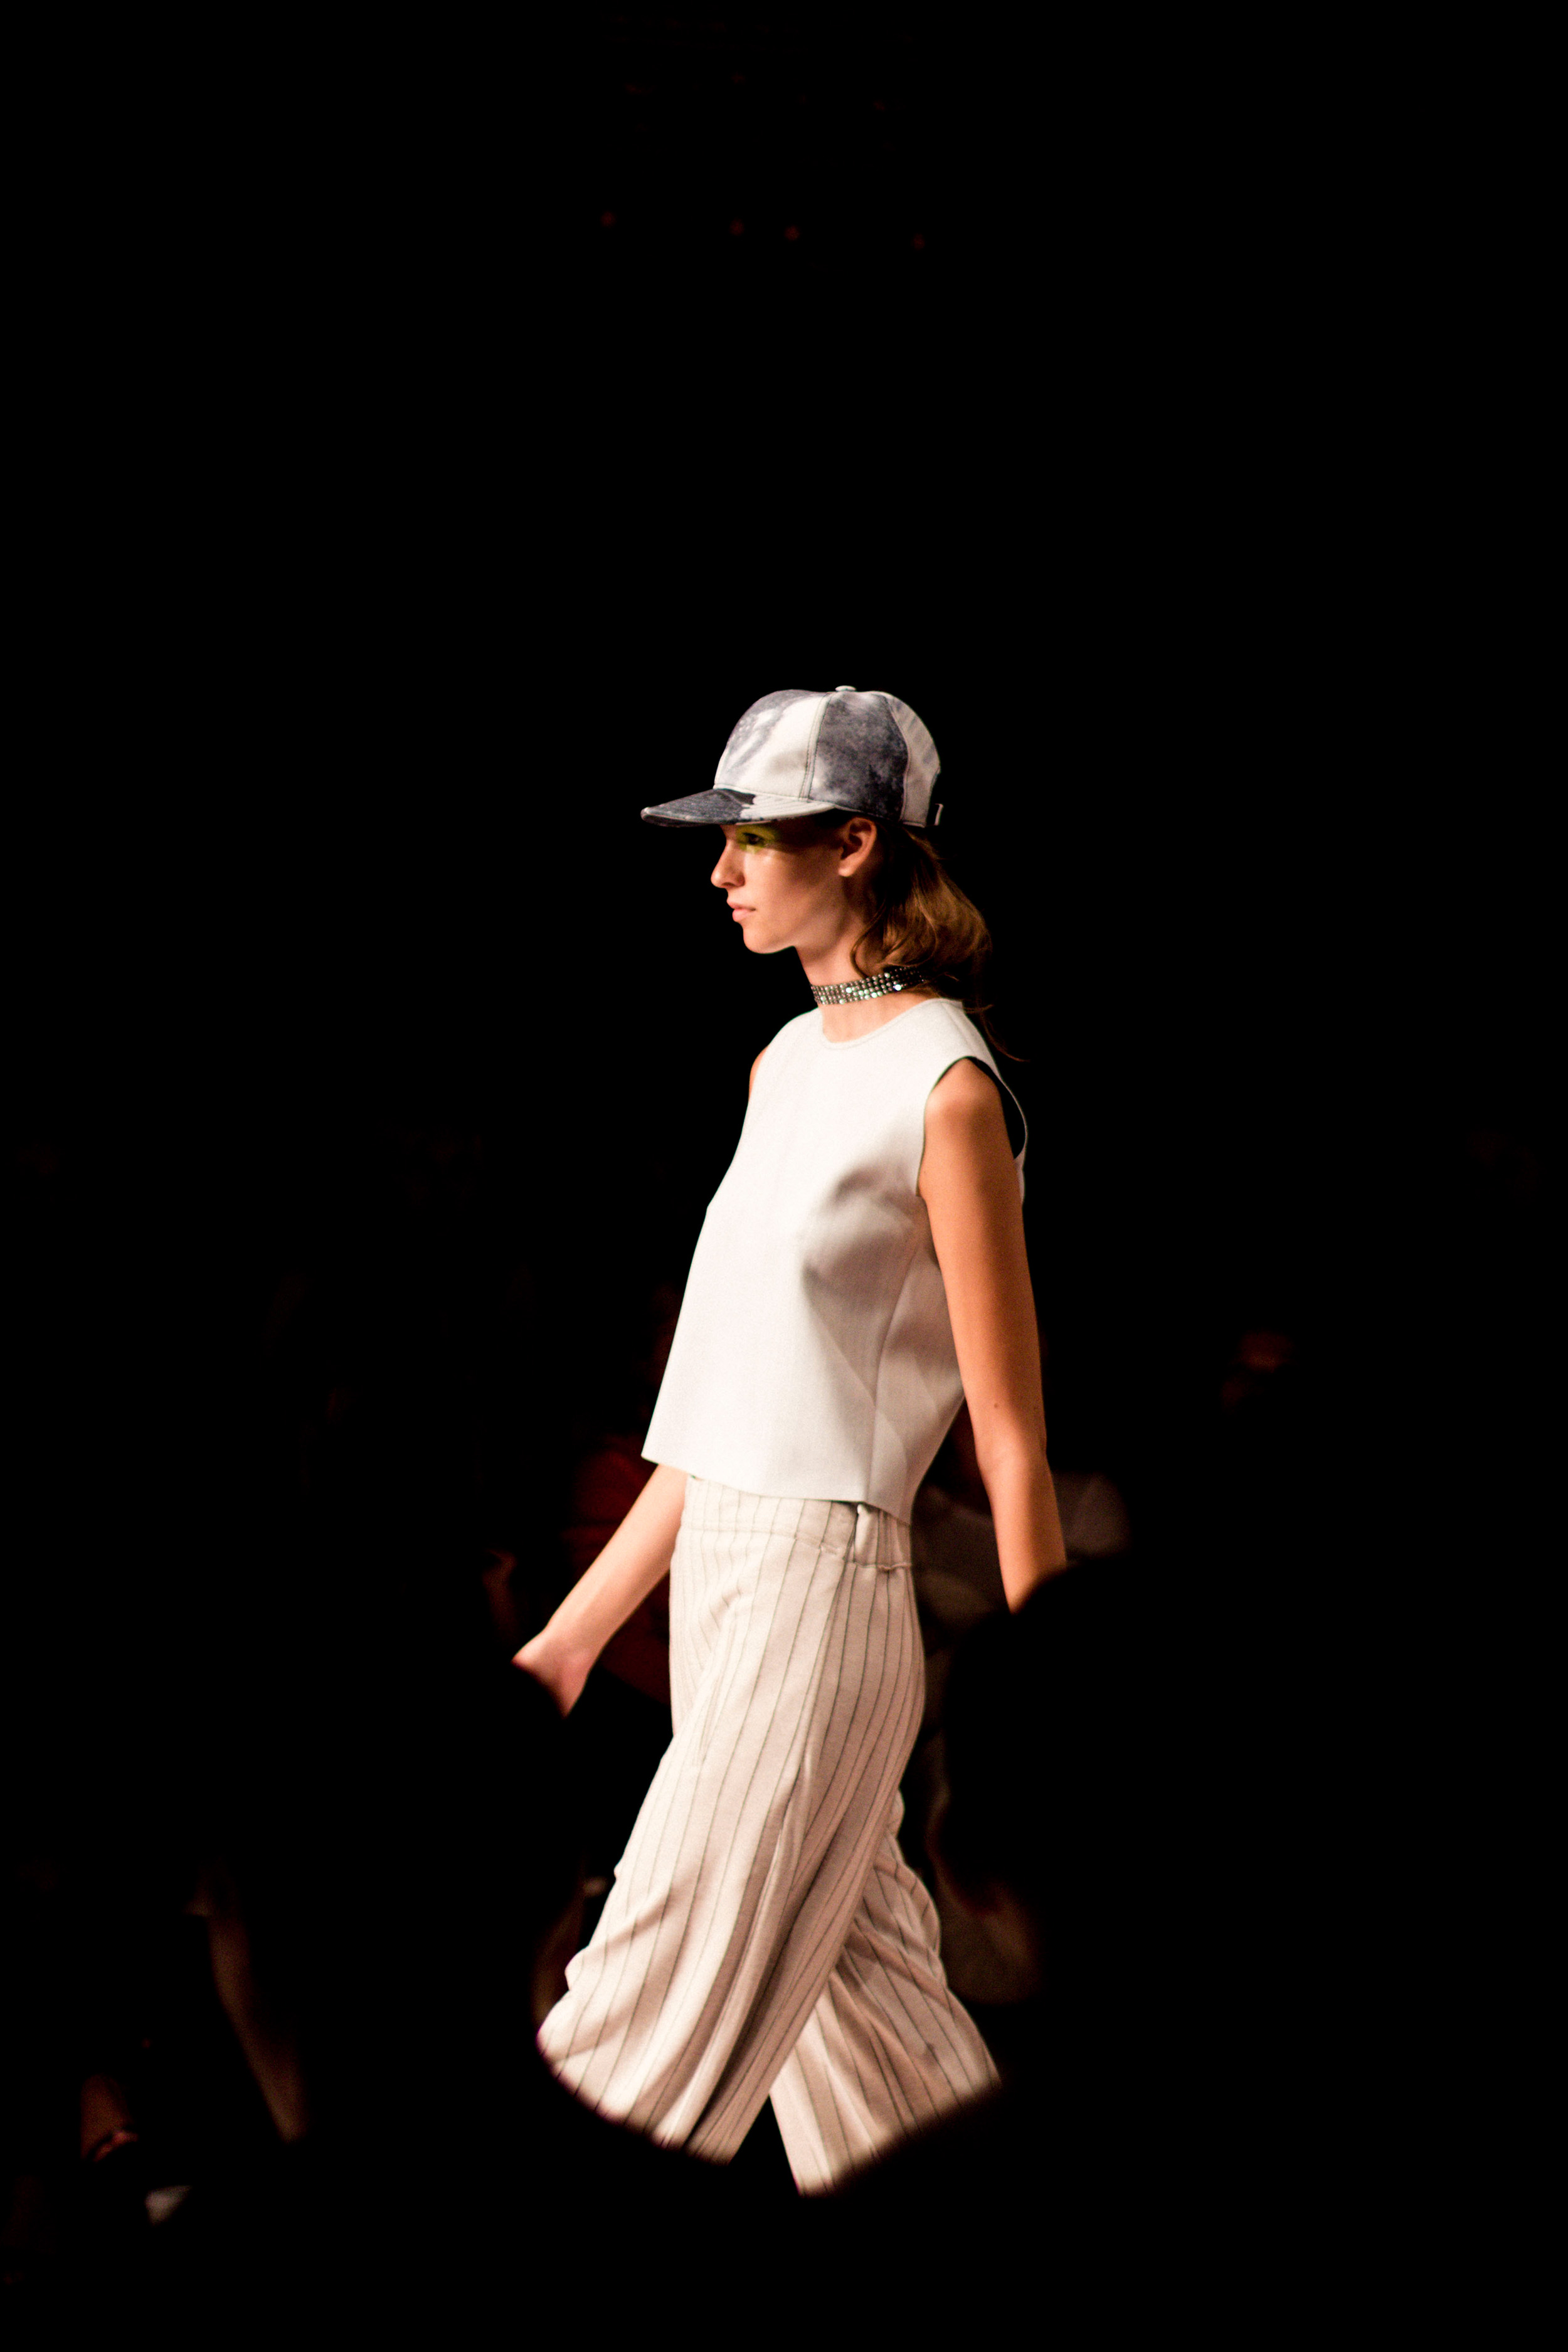 IHEARTALICE – Fashion, Travel & Lifestyle Blog from Berlin/Germany by Alice M. Huynh: Stockholm Fashion Week S/S 16 – Minimarket